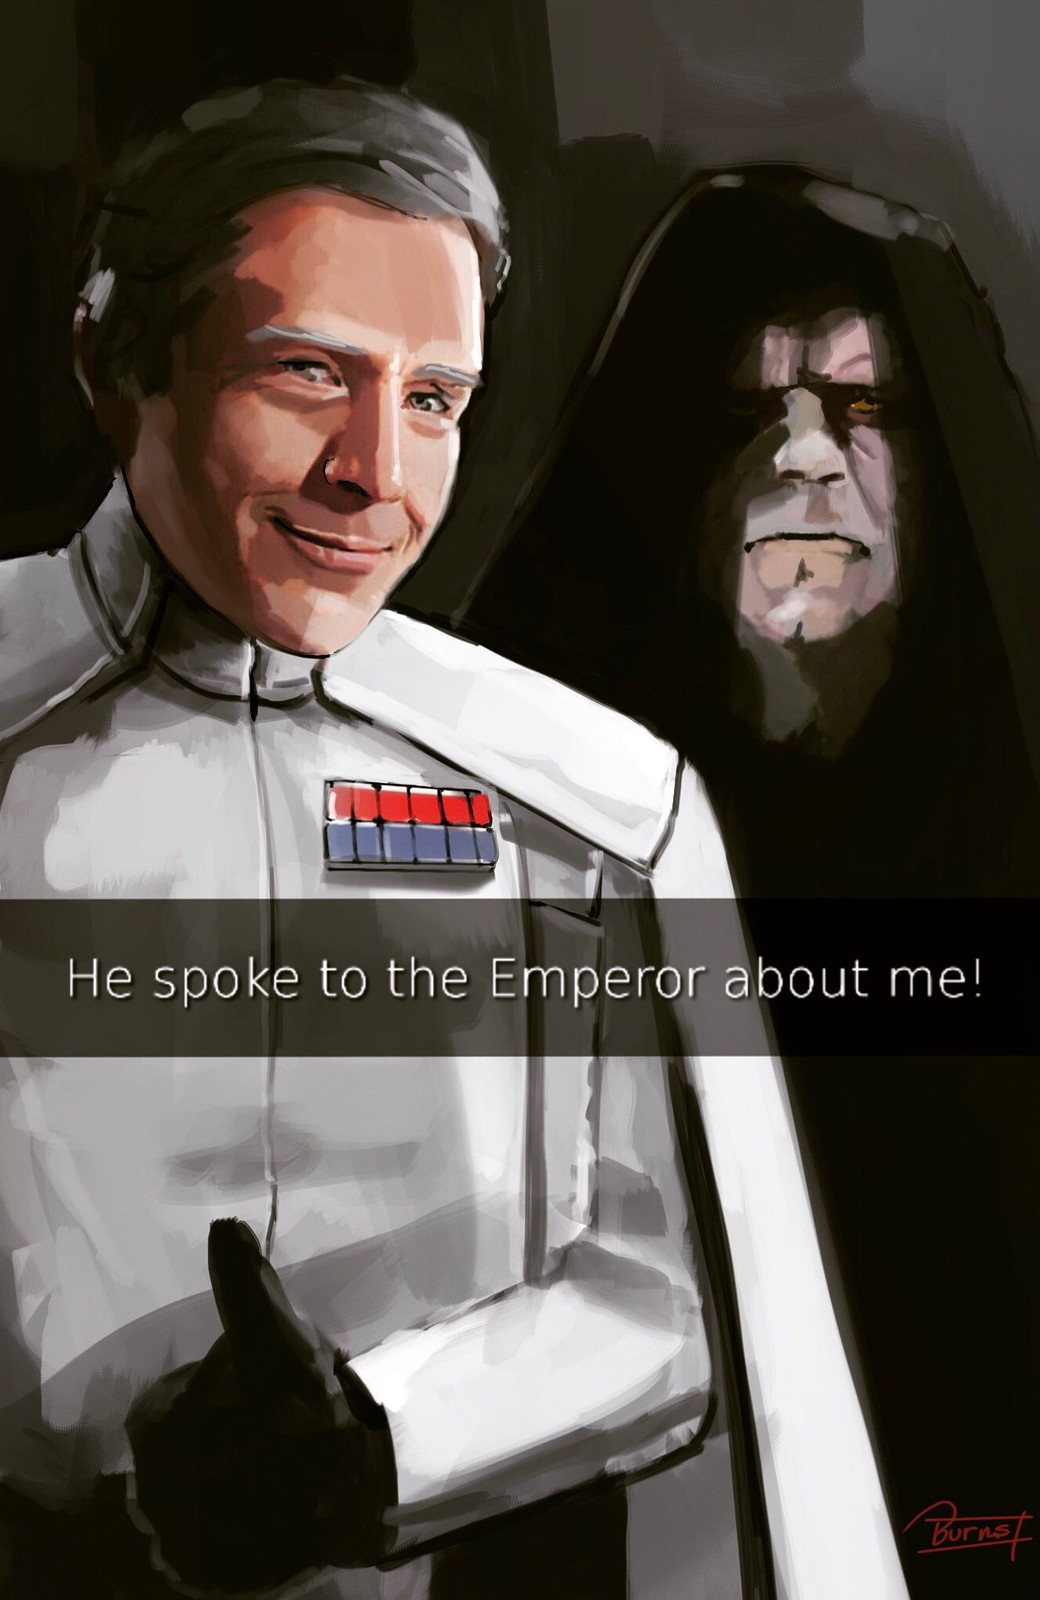 He spoke to the Emperor about me!